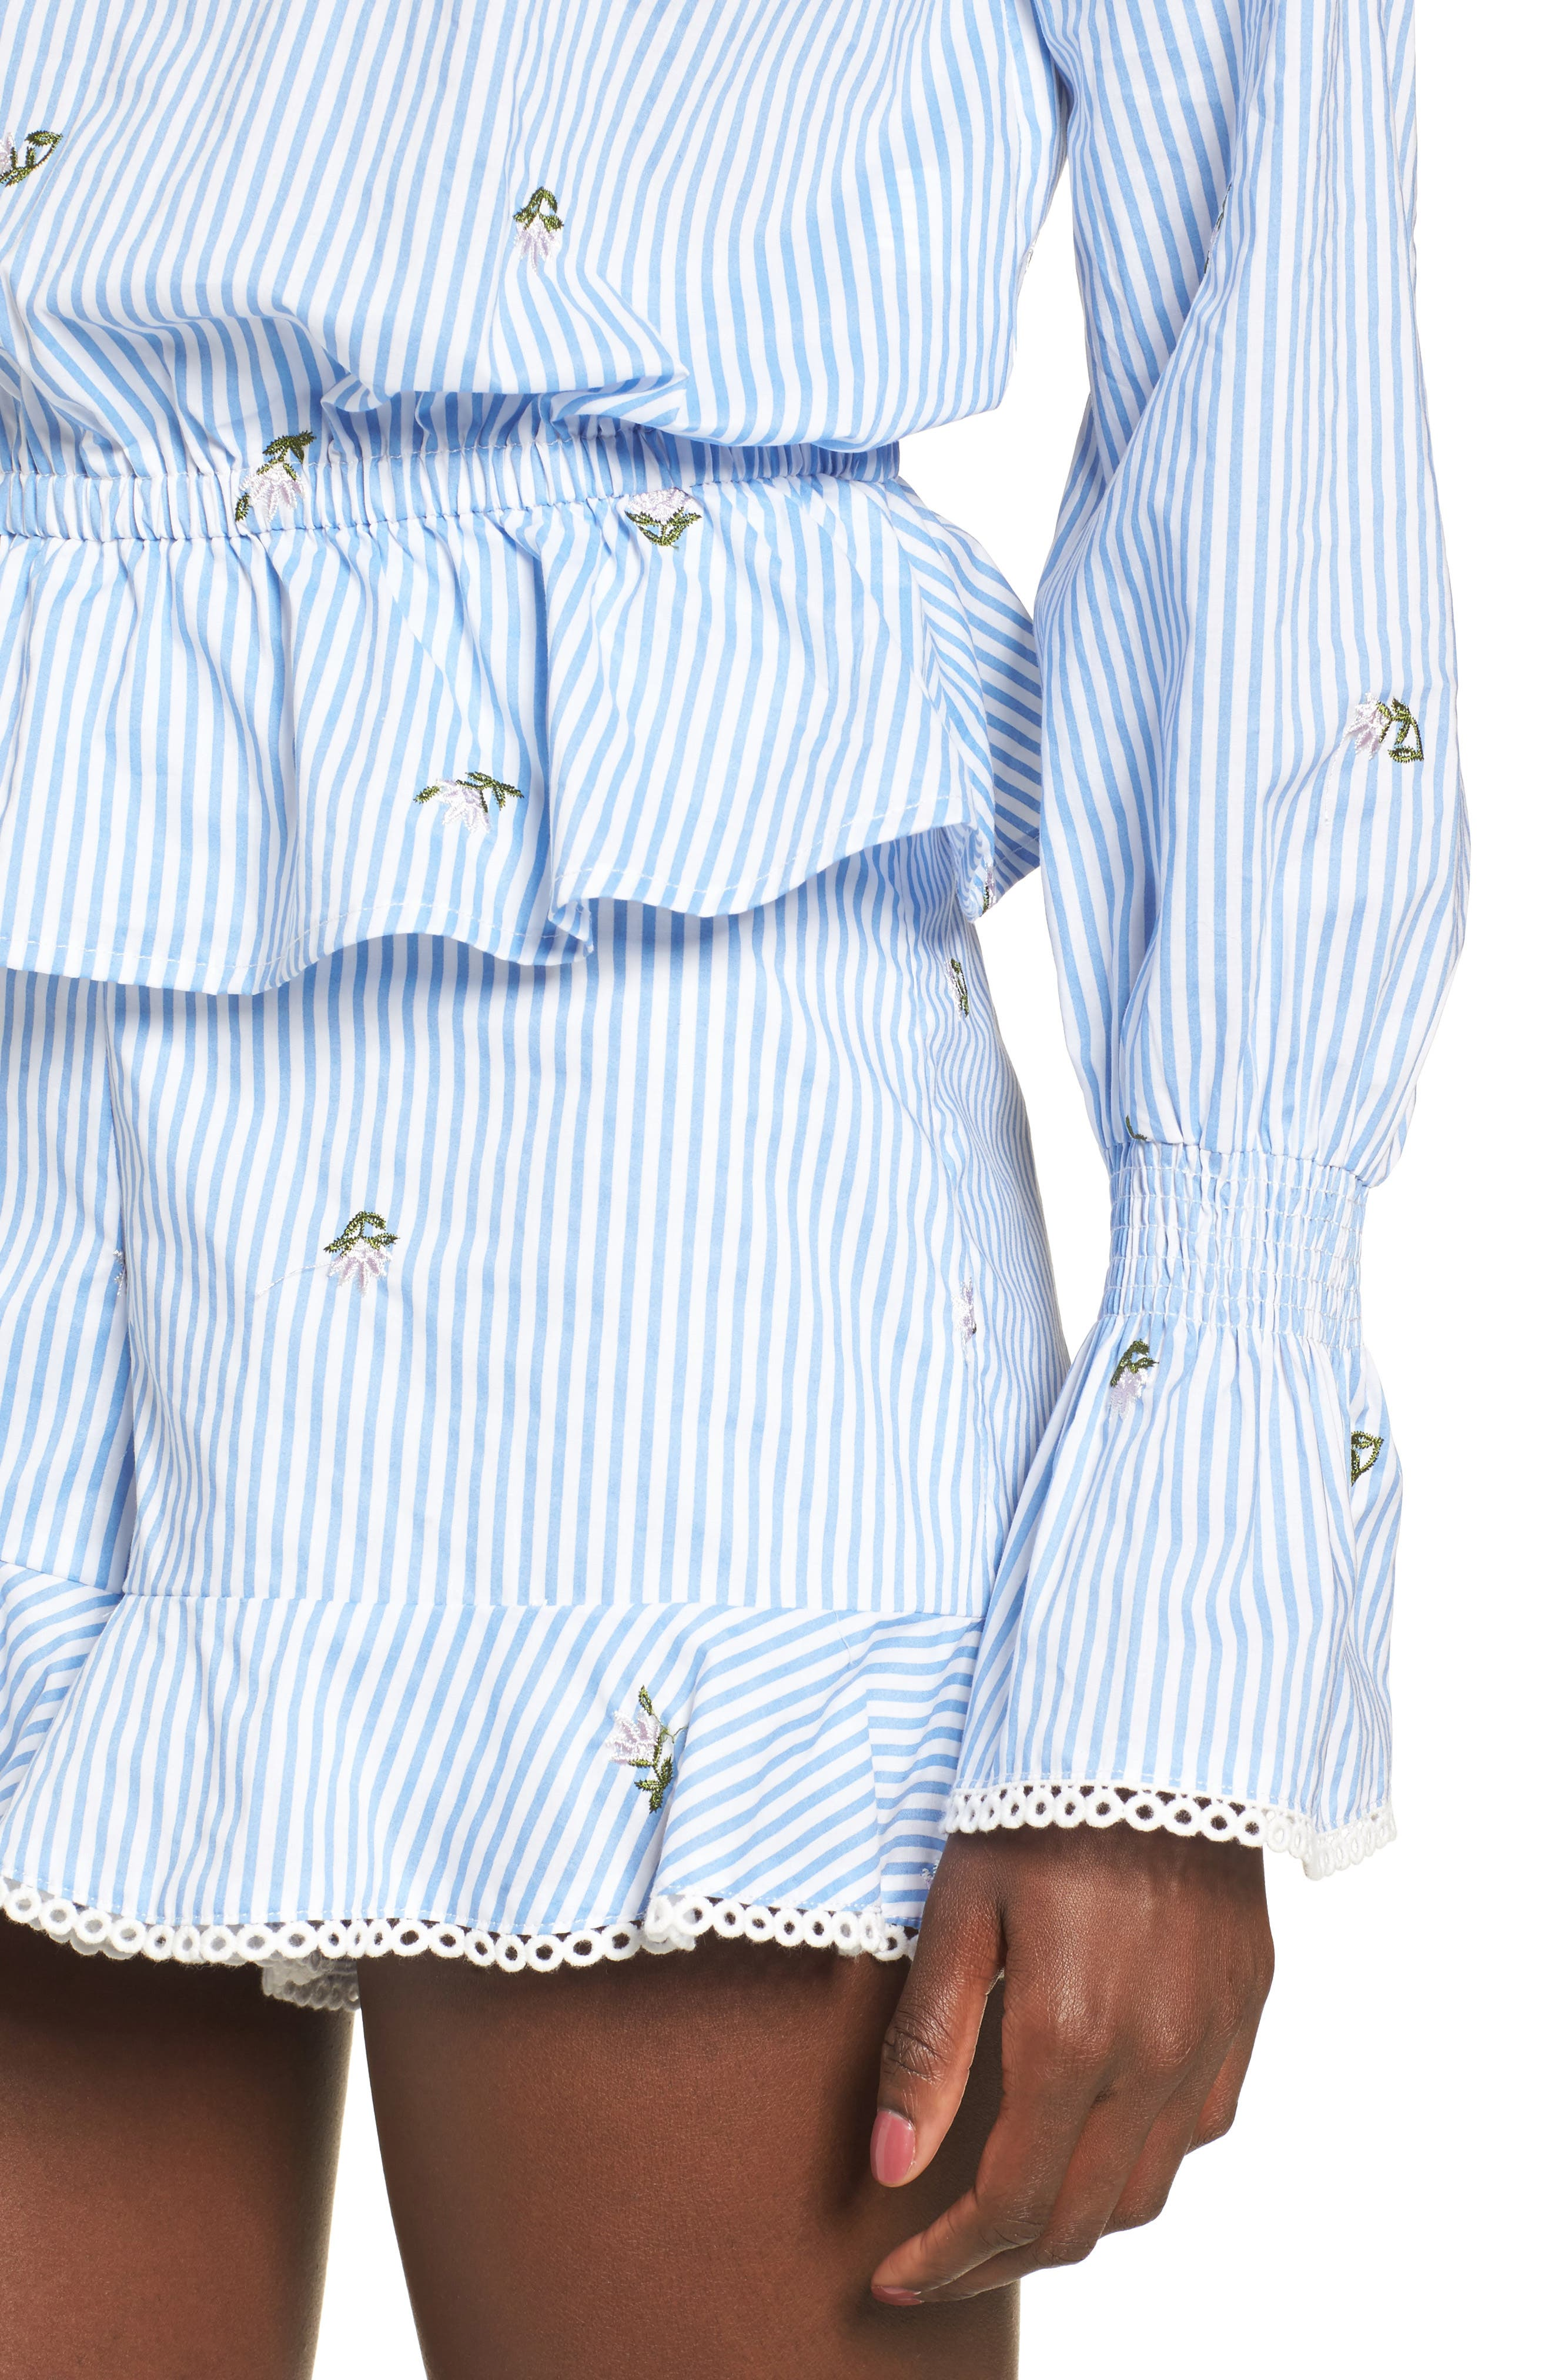 Embroidered Peplum Top,                             Alternate thumbnail 4, color,                             Blue/ Ivory Stripe